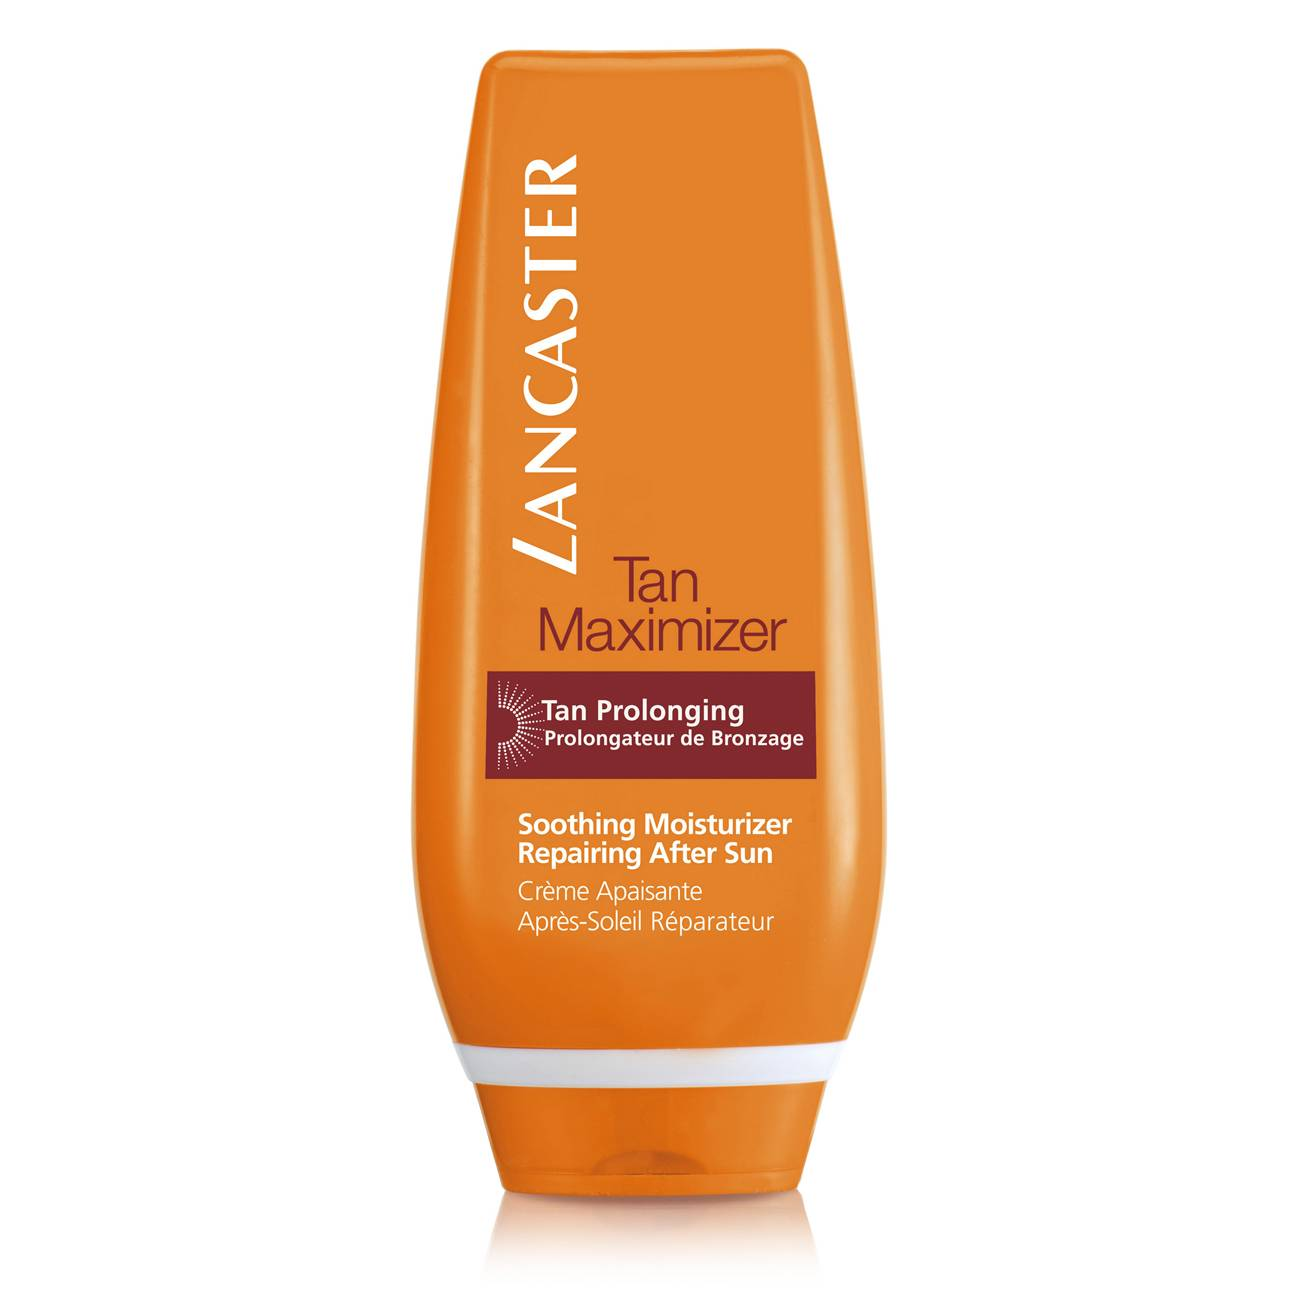 SOOTHING MOISTURIZER REPAIRING AFTER SUN FACE & BODY 125 Ml poza